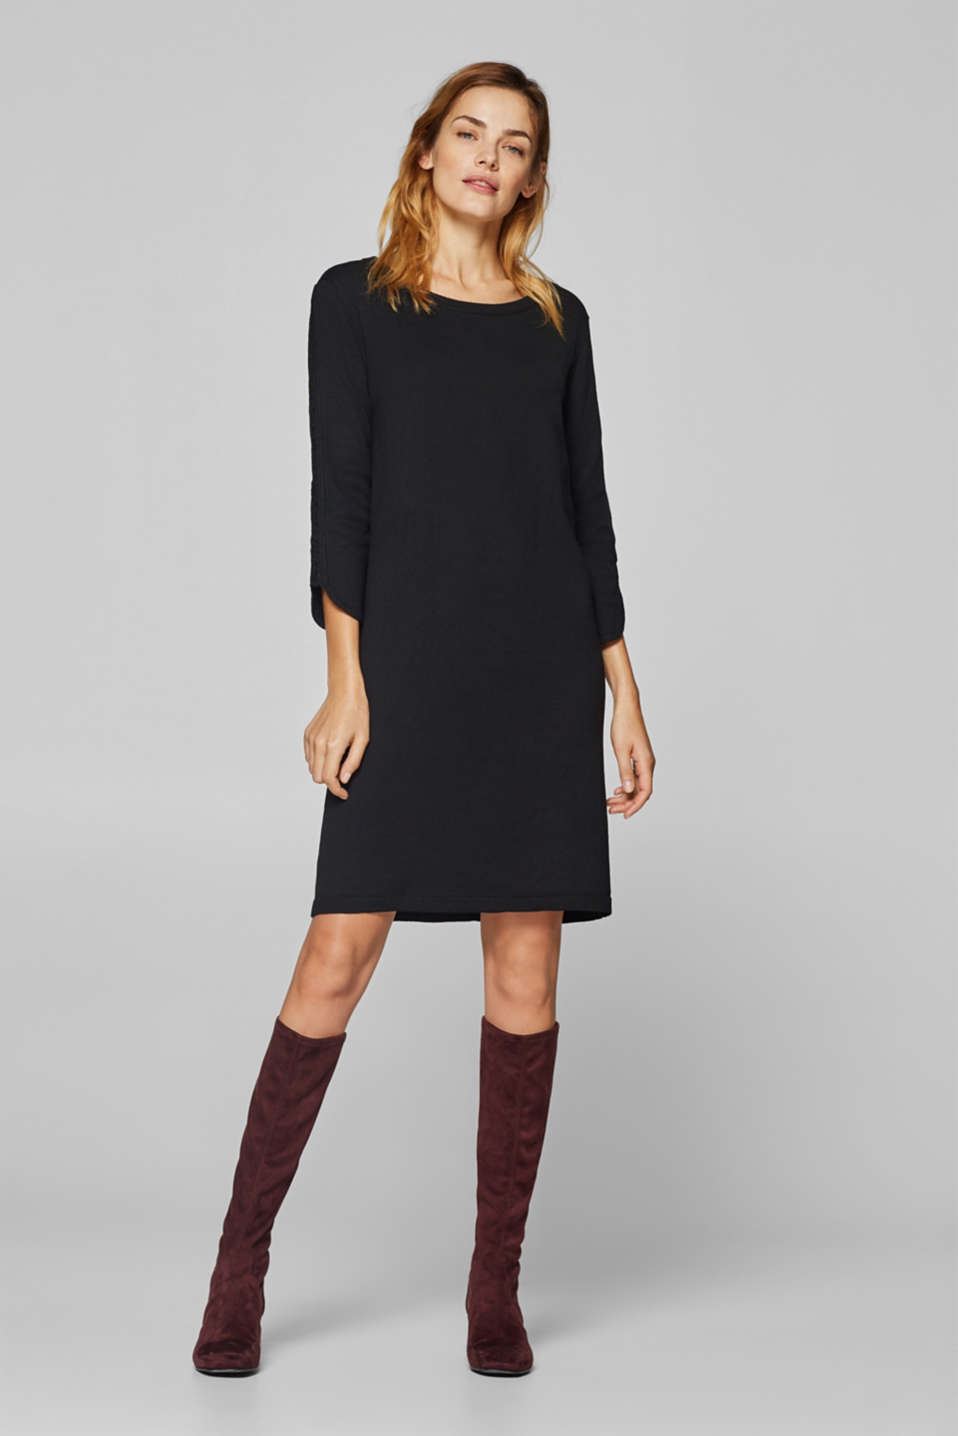 Esprit - Knit dress with lace accents